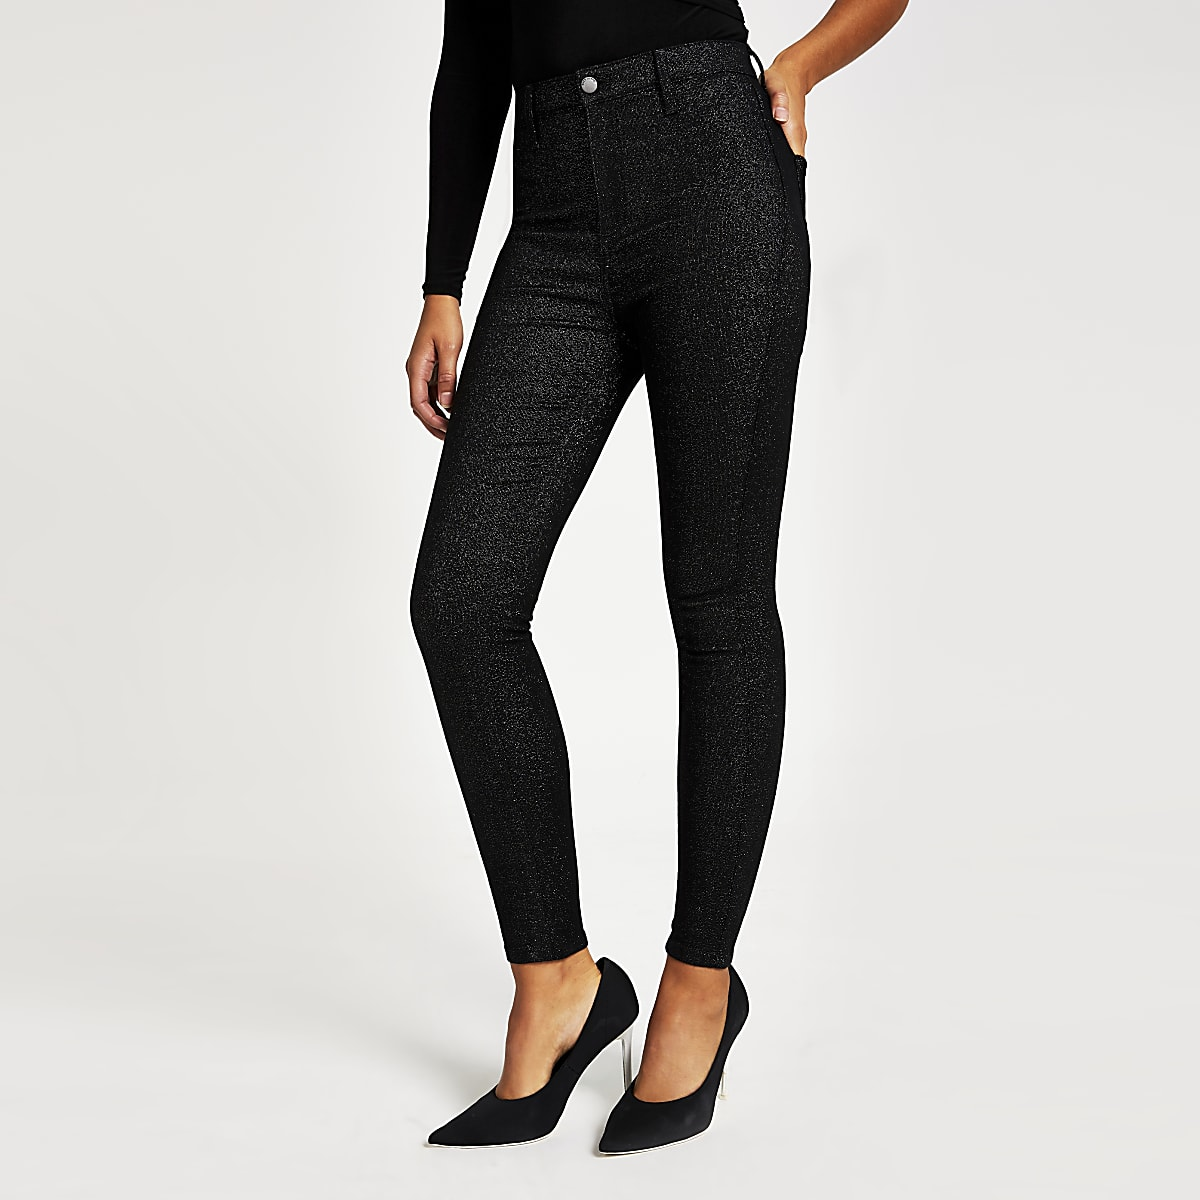 Black glitter Kaia high rise disco jeans